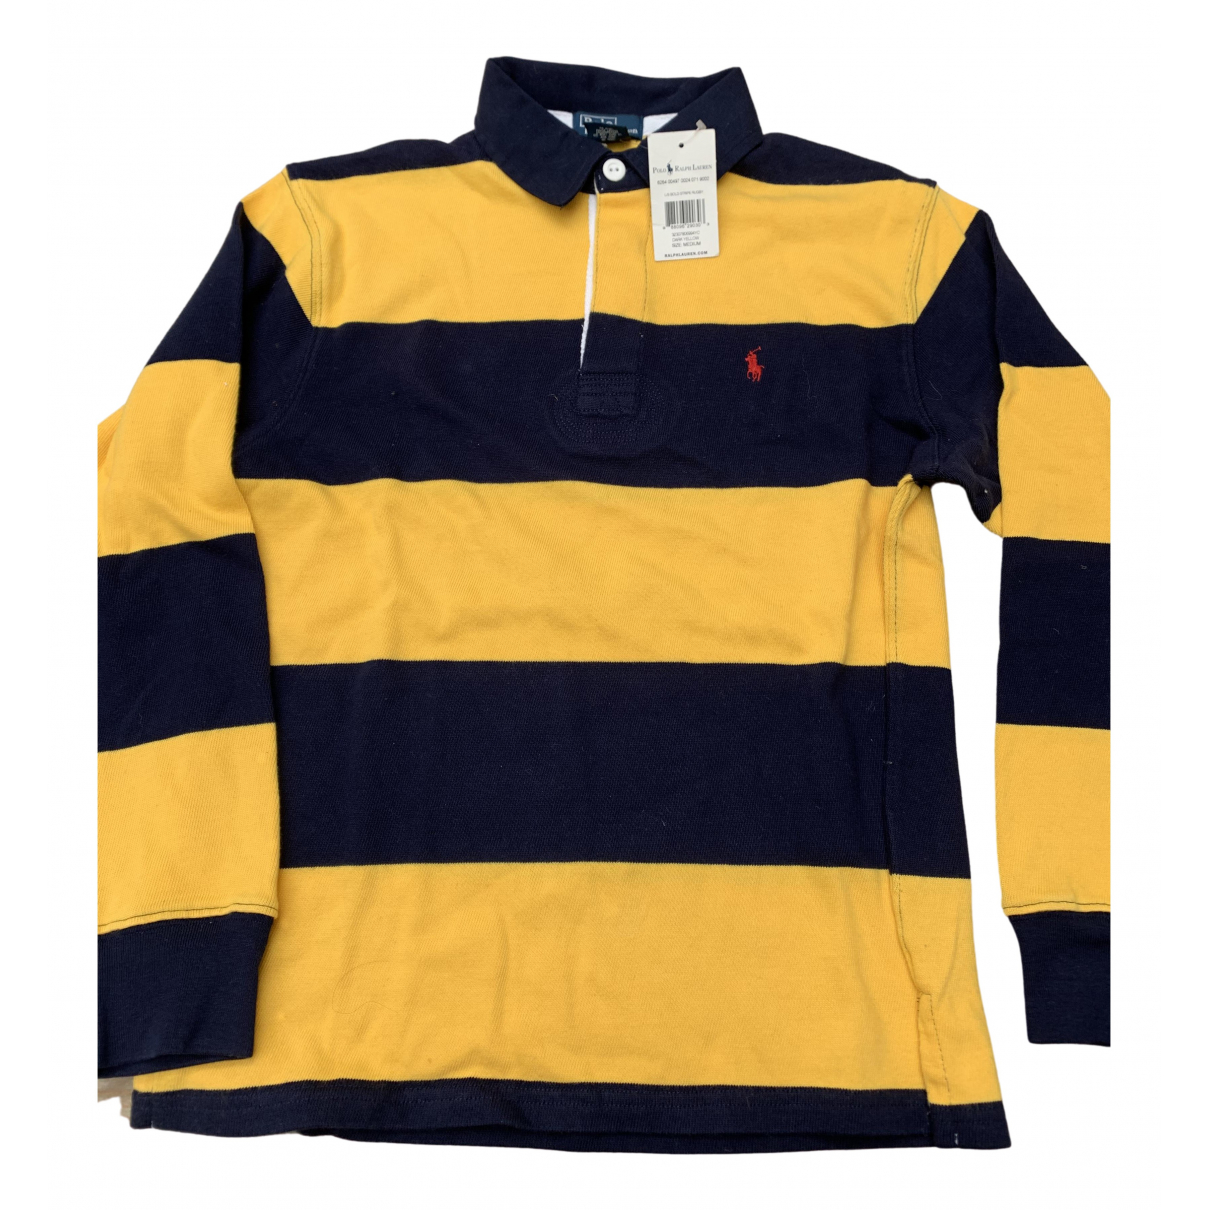 Polo Ralph Lauren \N Yellow Cotton  top for Kids 10 years - until 56 inches UK